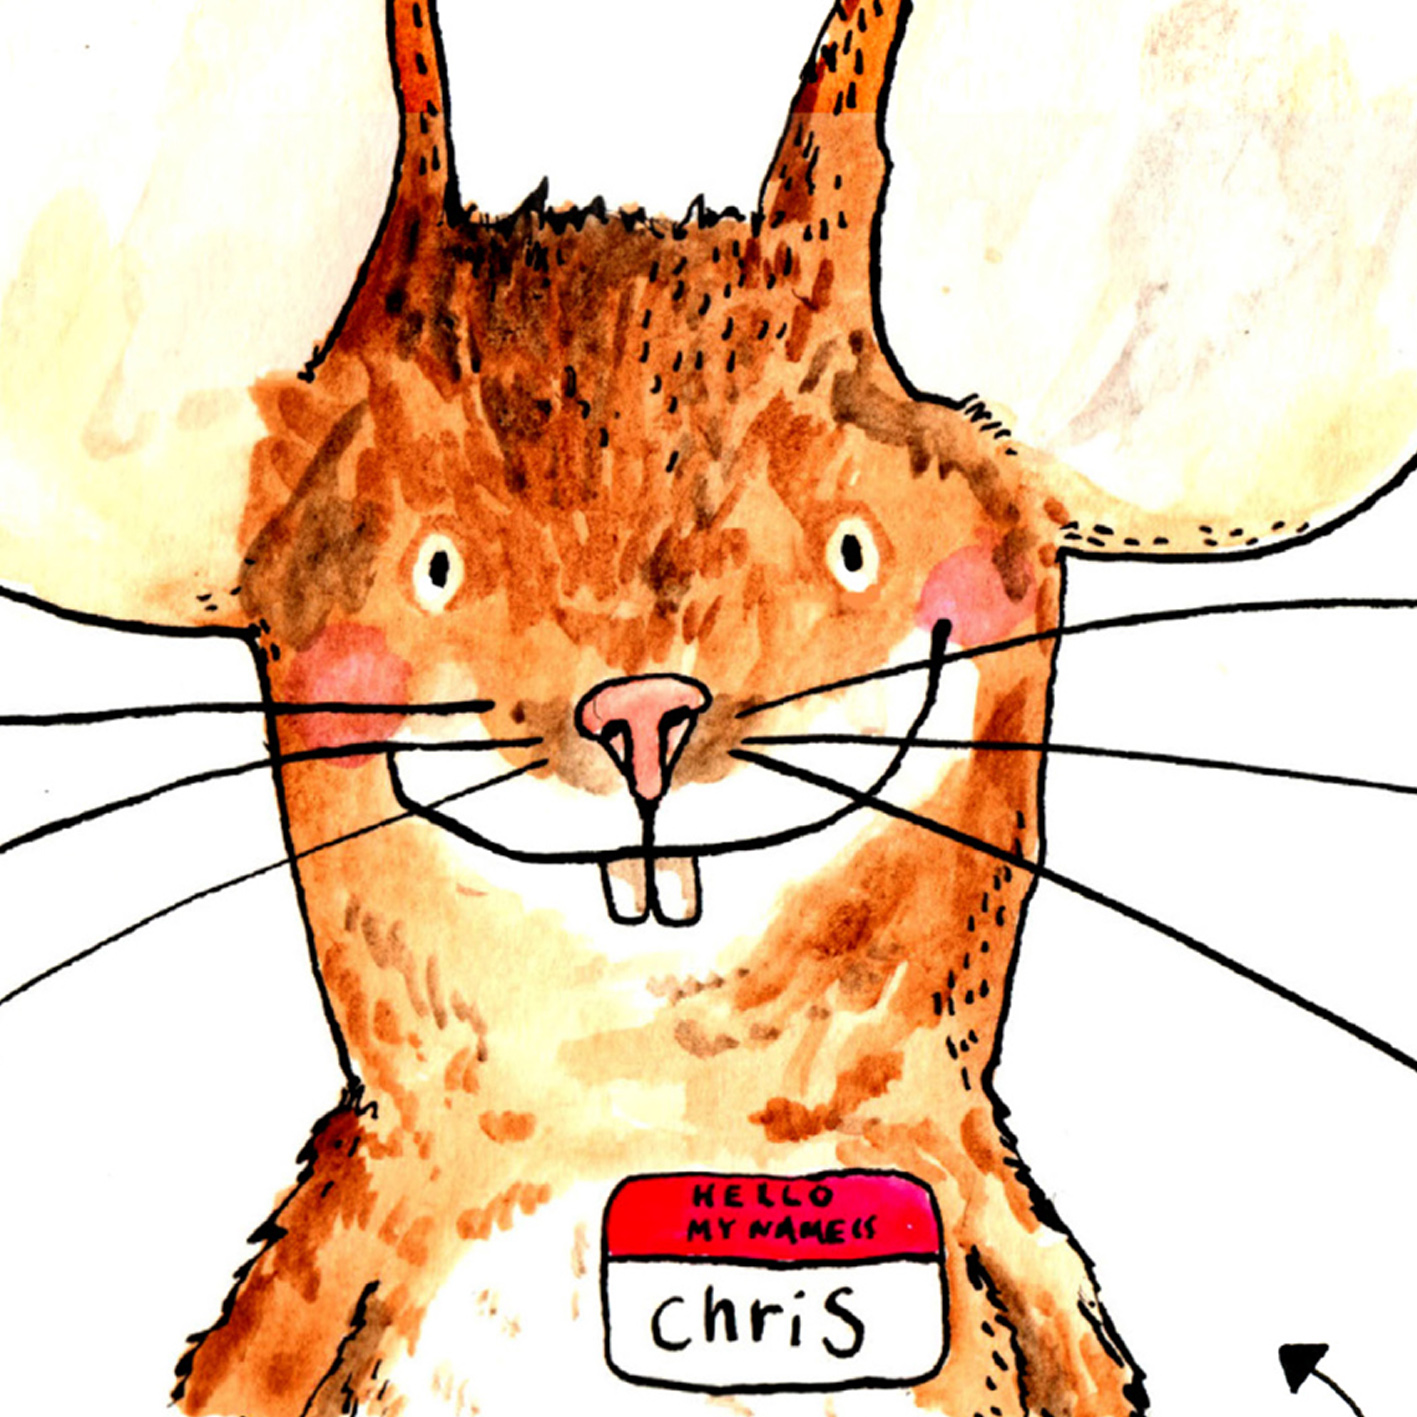 Chris-Mouse_-Funny-Christmas-card-with-pun-mouse-joke_CH01_CU